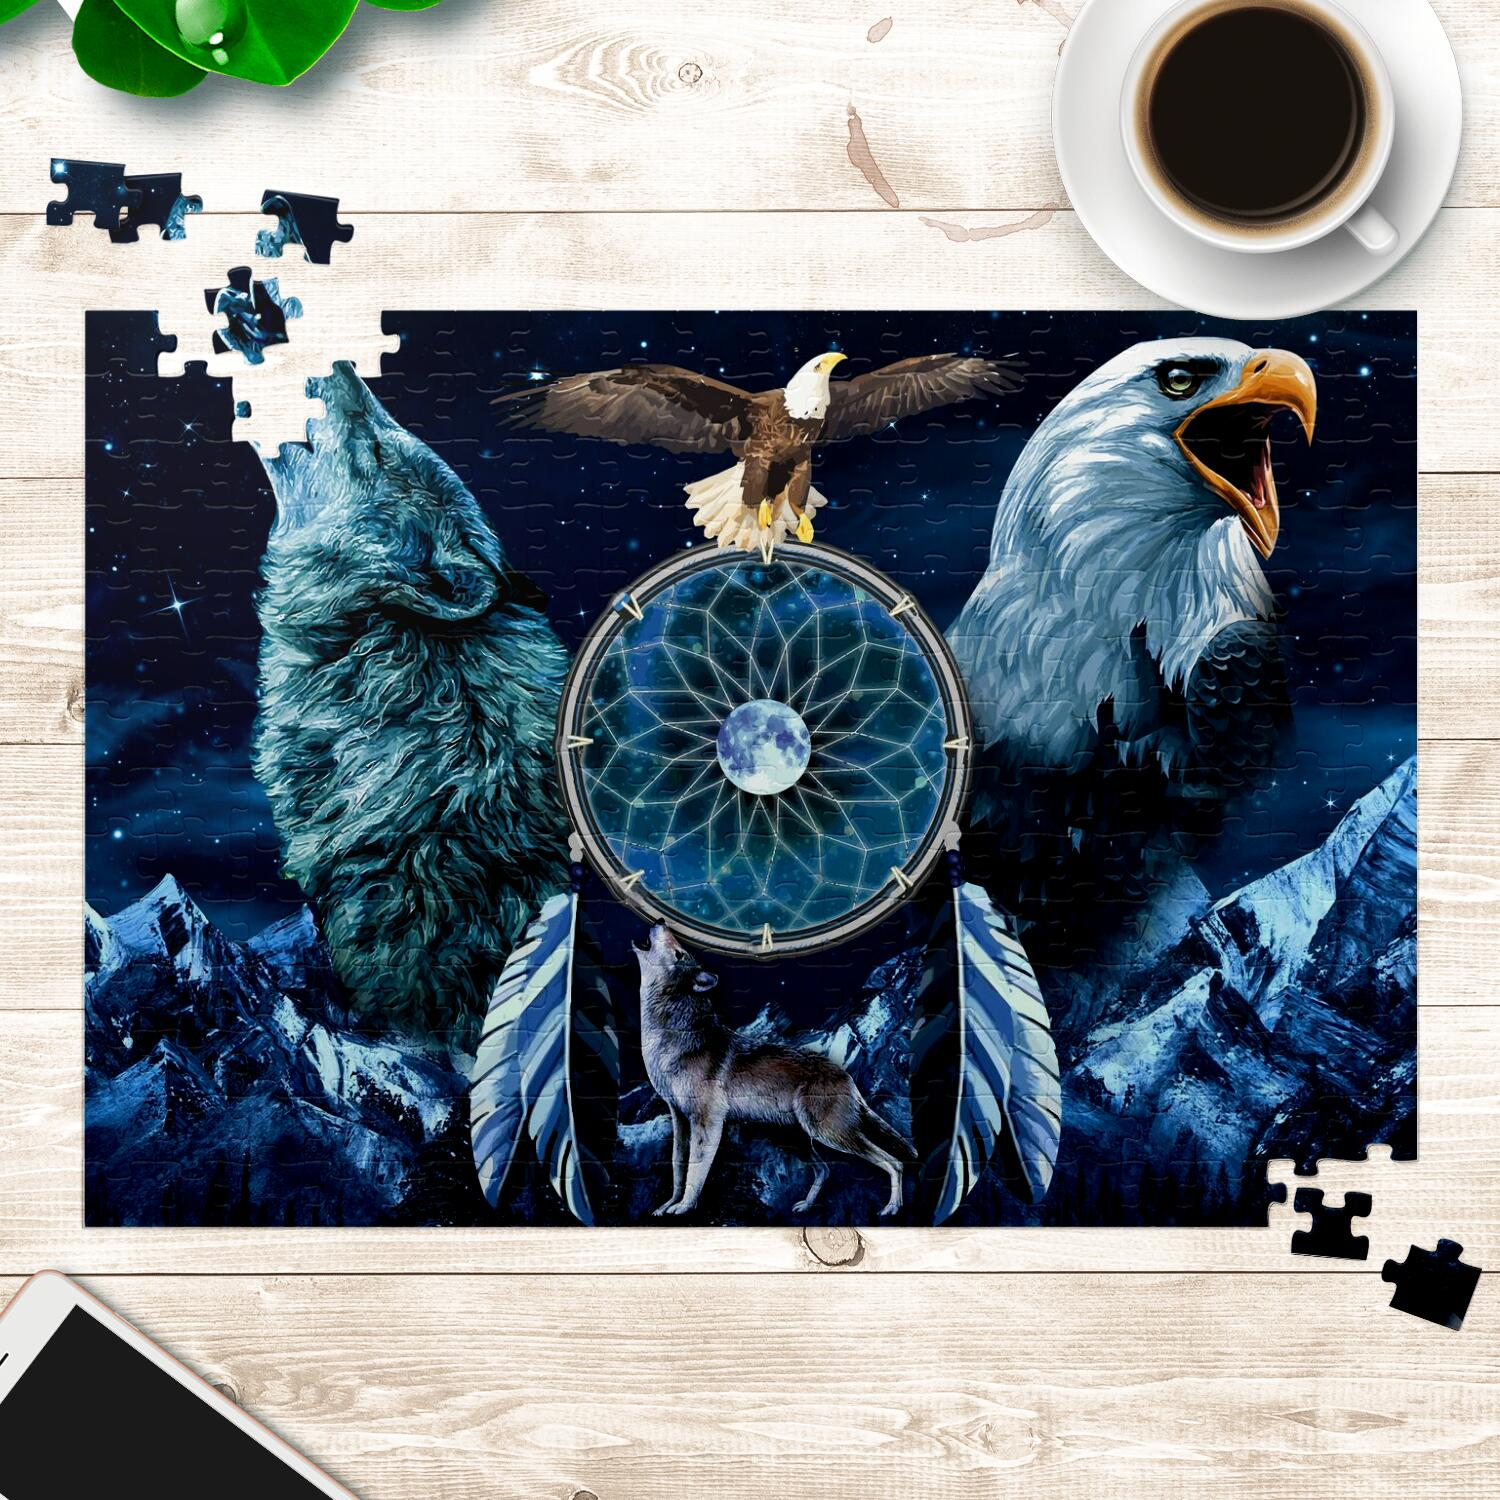 Spirit Animal Dreamcatcher Jigsaw Puzzles